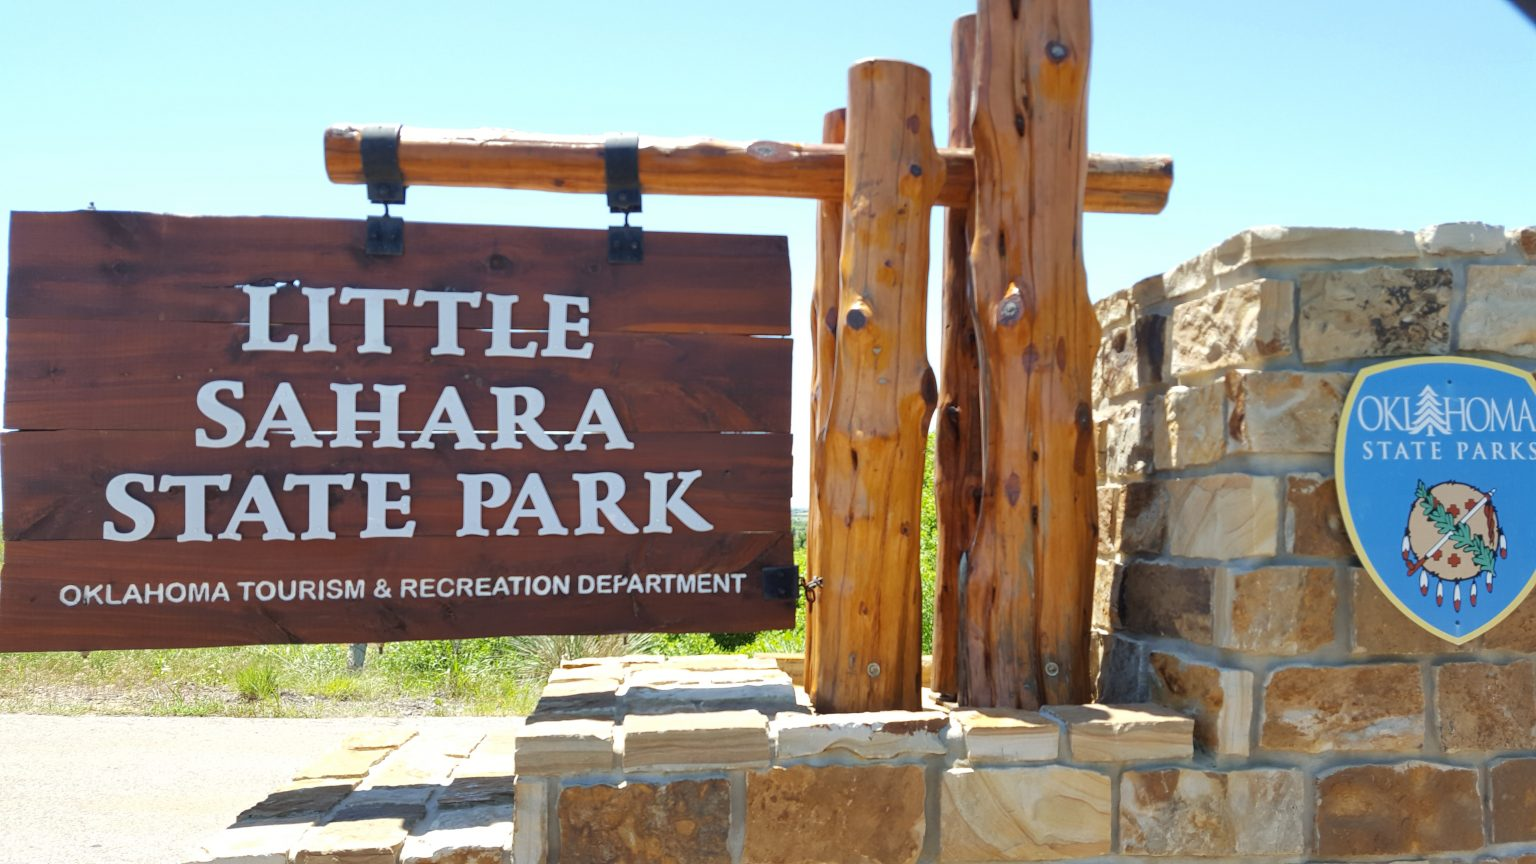 Oklahoma Sand Dunes: Little Sahara and Beaver – Eternal Trek